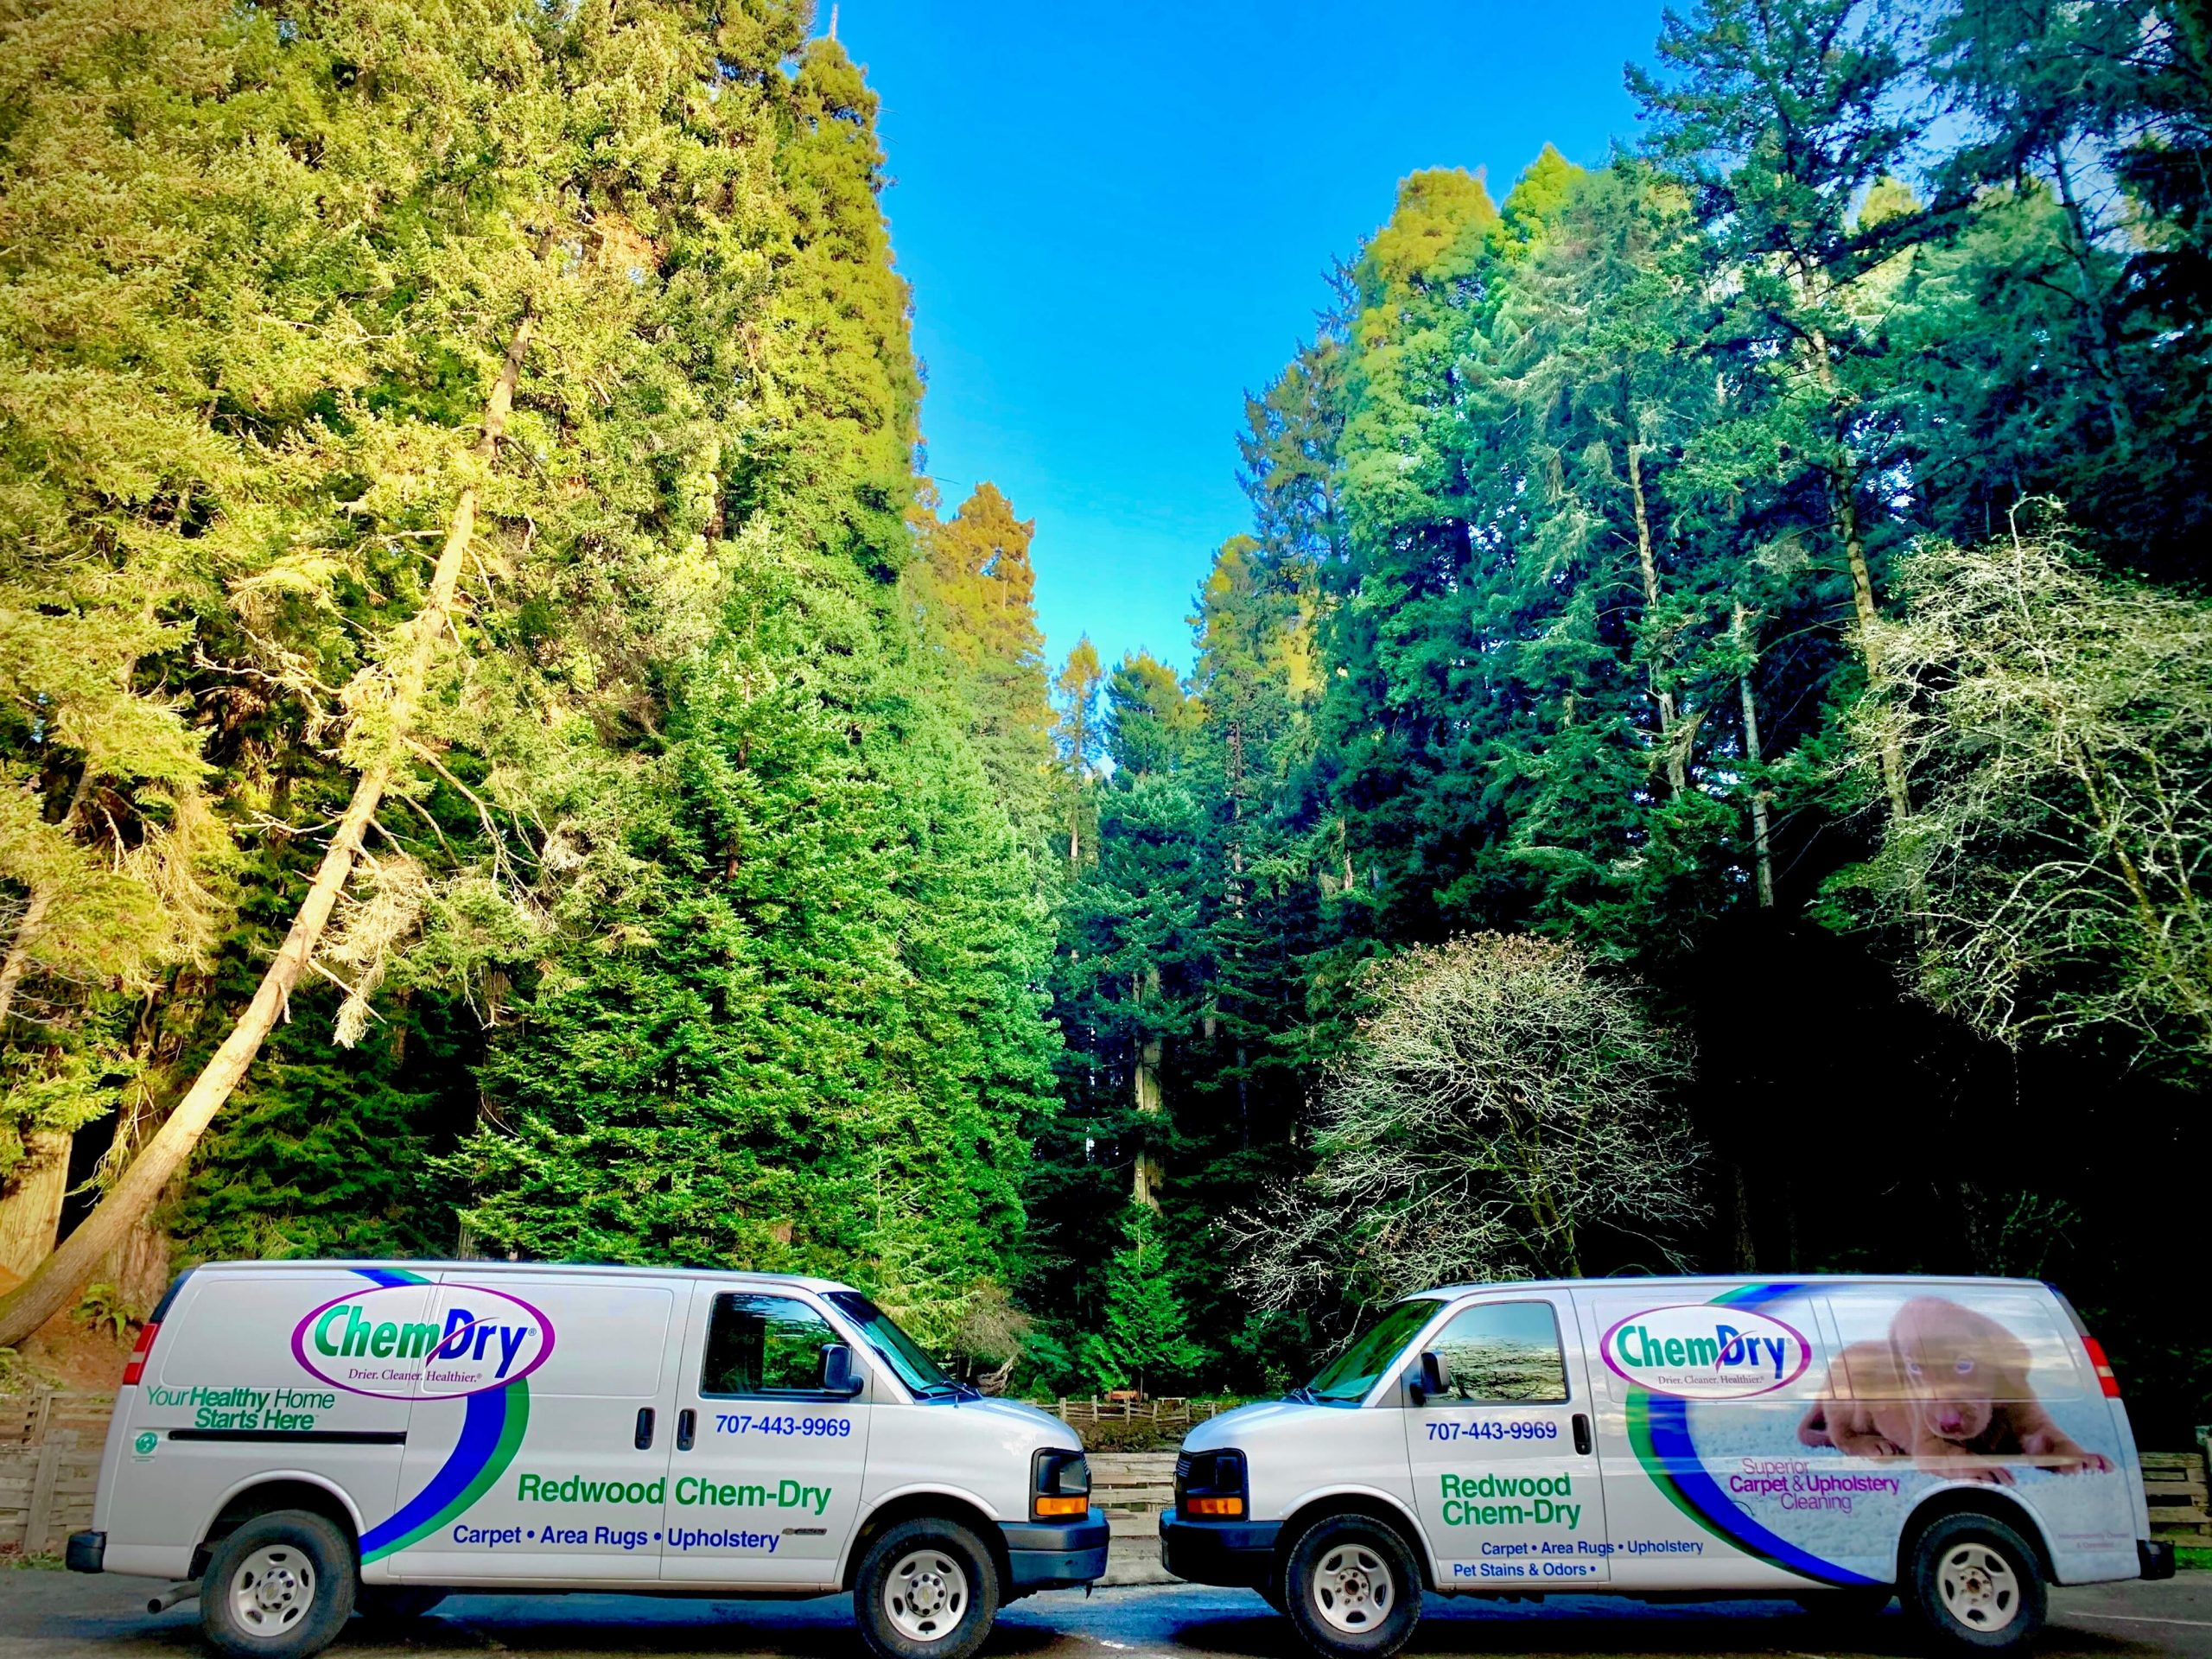 Redwood Chem-Dry service van and technician preparing for carpet cleaning service